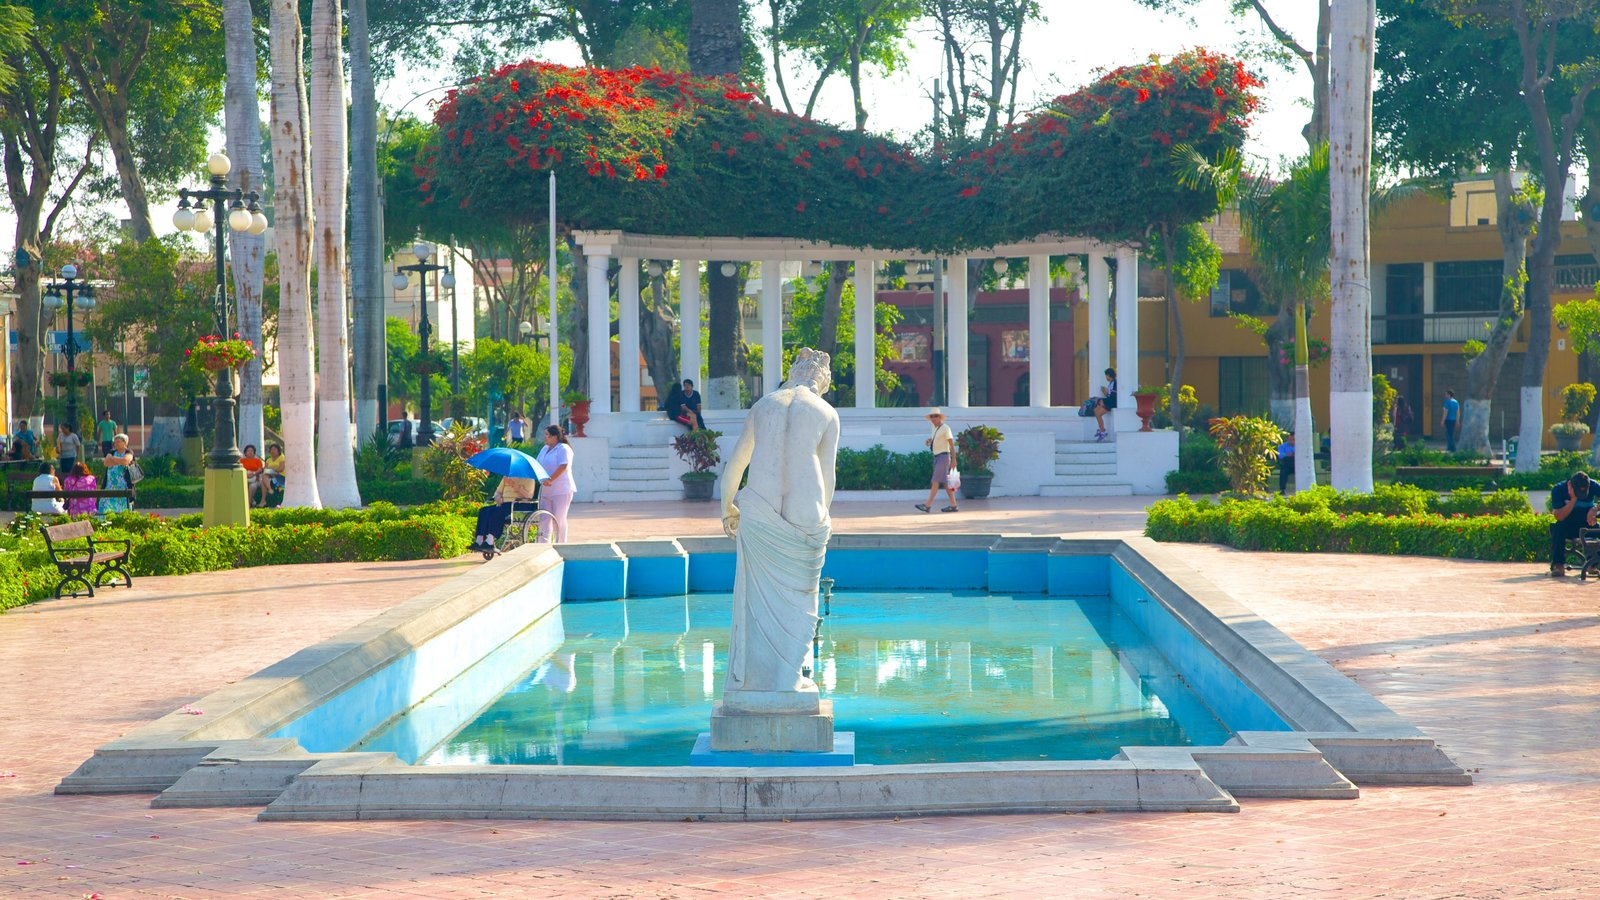 Lima featuring a square or plaza, a statue or sculpture and a fountain